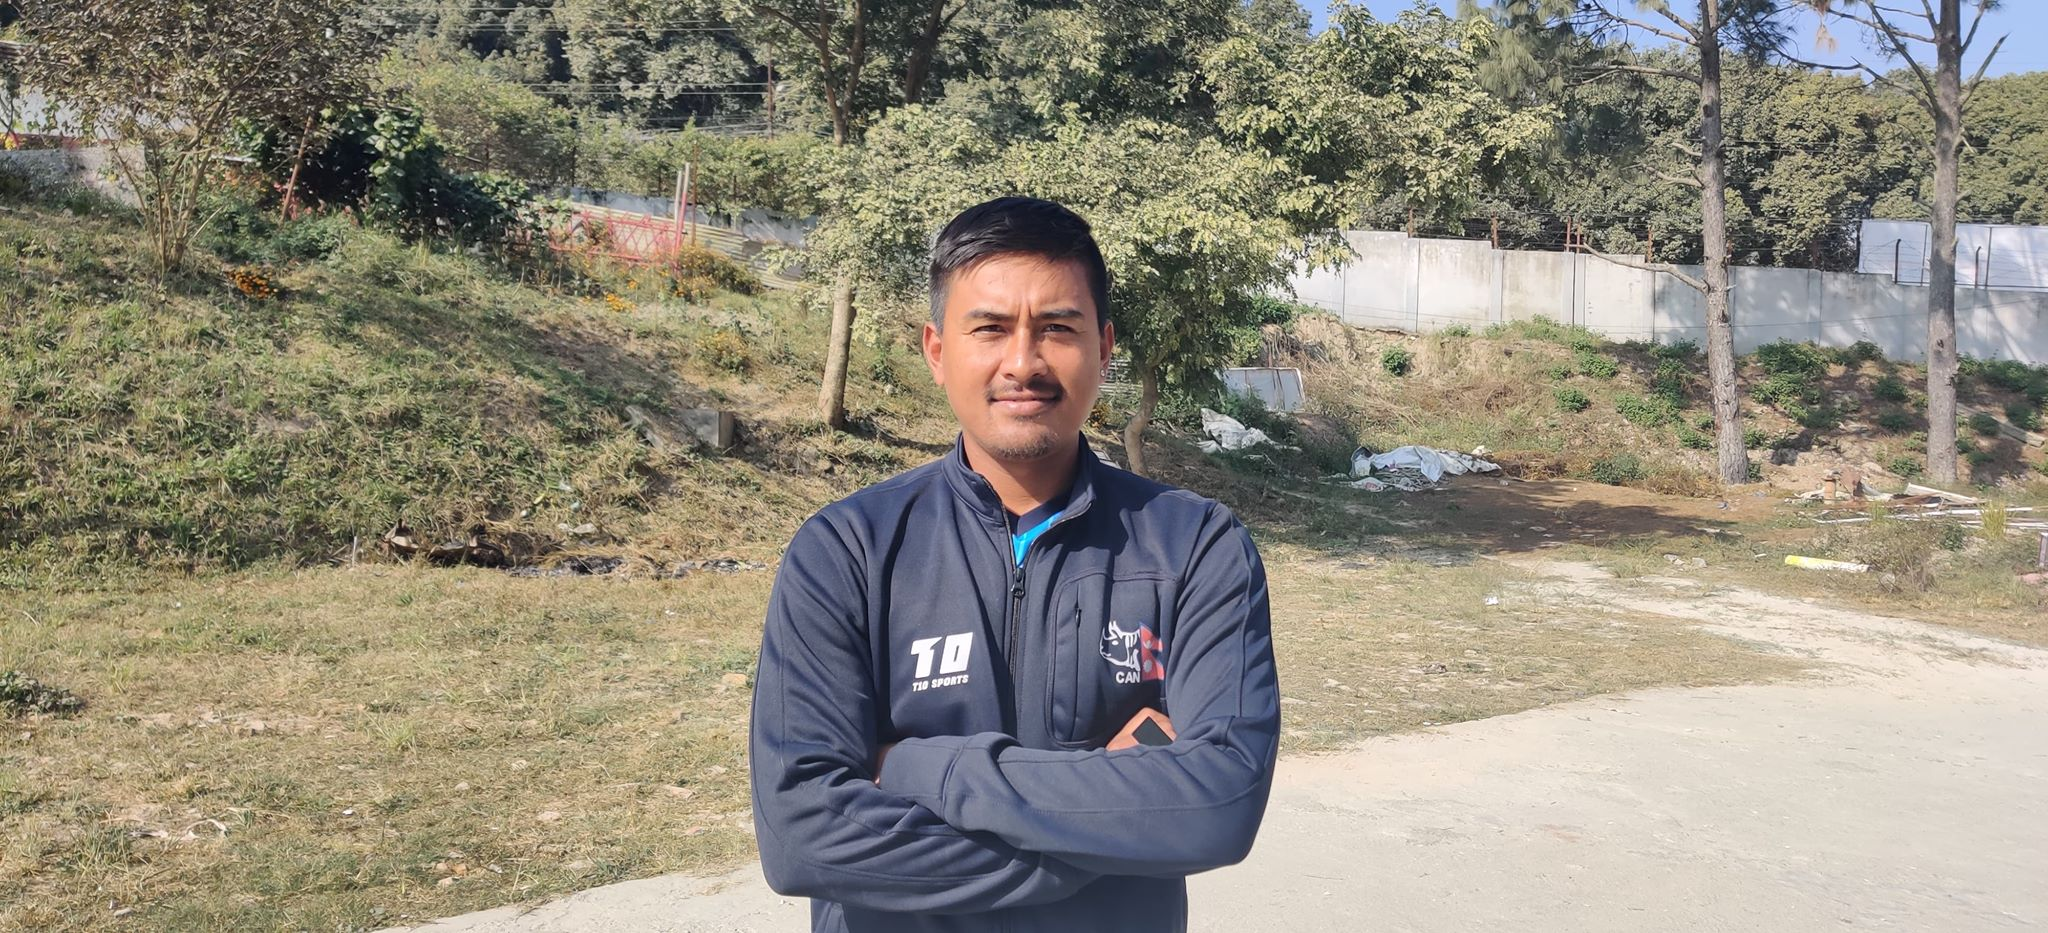 Tickets for SAG matches not affordable: Gyanendra Malla